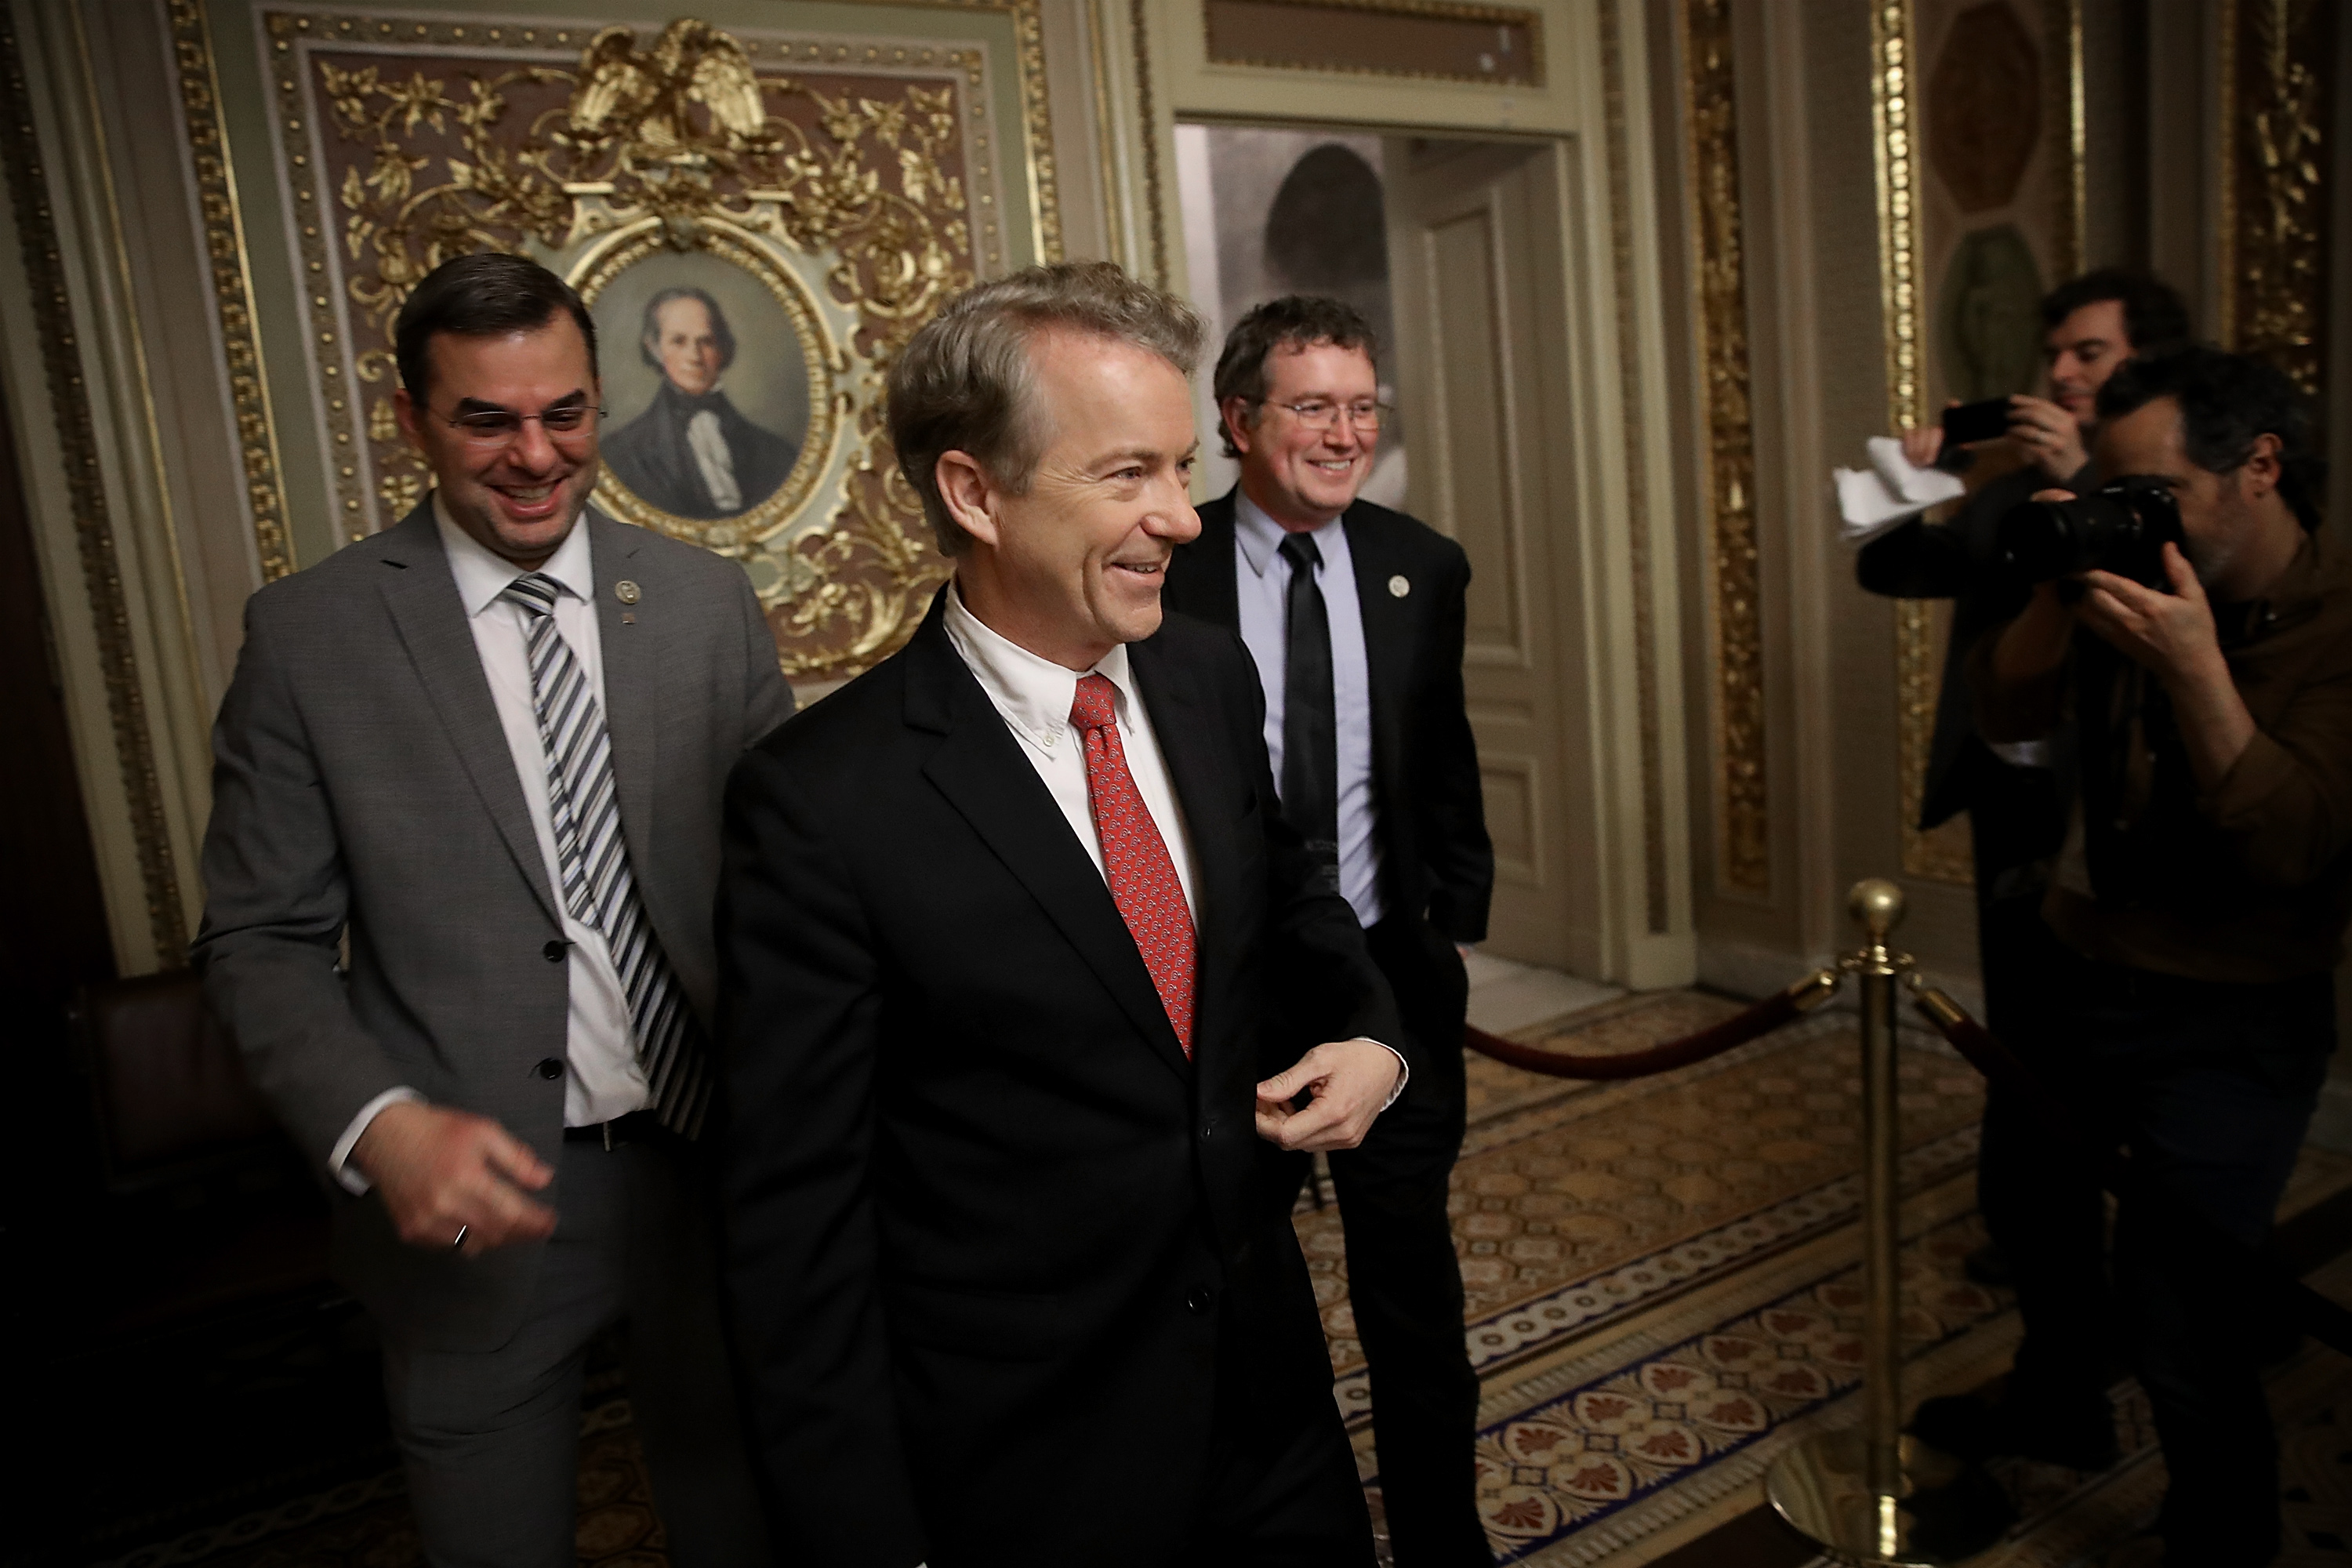 Sen. Rand Paul takes a break from the floor of the U.S. Senate with Rep. Justin Amash and Rep. Thomas Massie at the U.S. Capitol on Feb. 8, 2018.